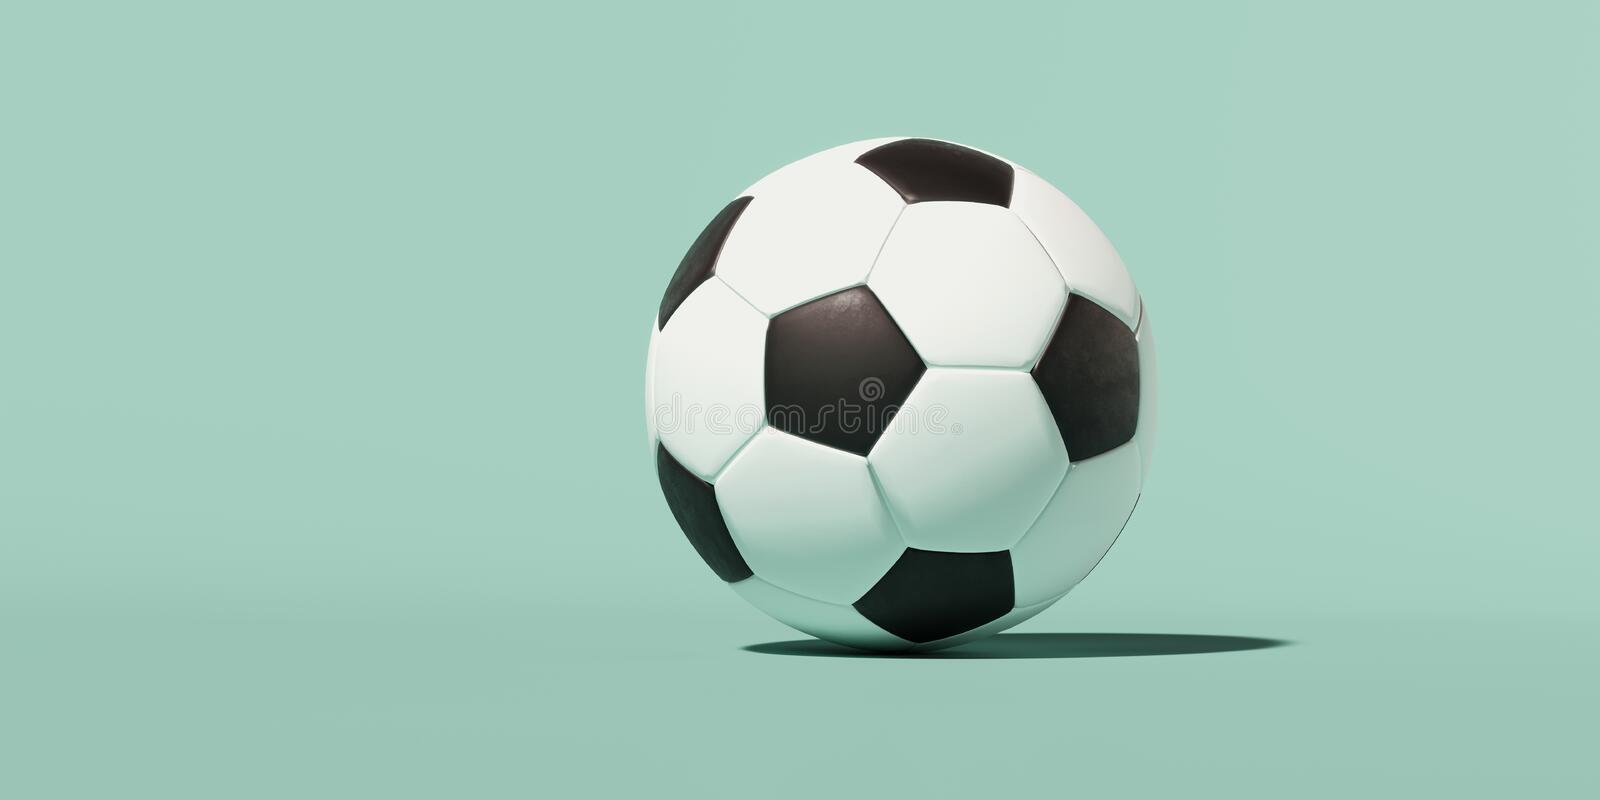 d image black white classic soccer ball green background place text banner icon wallpaper 178111640